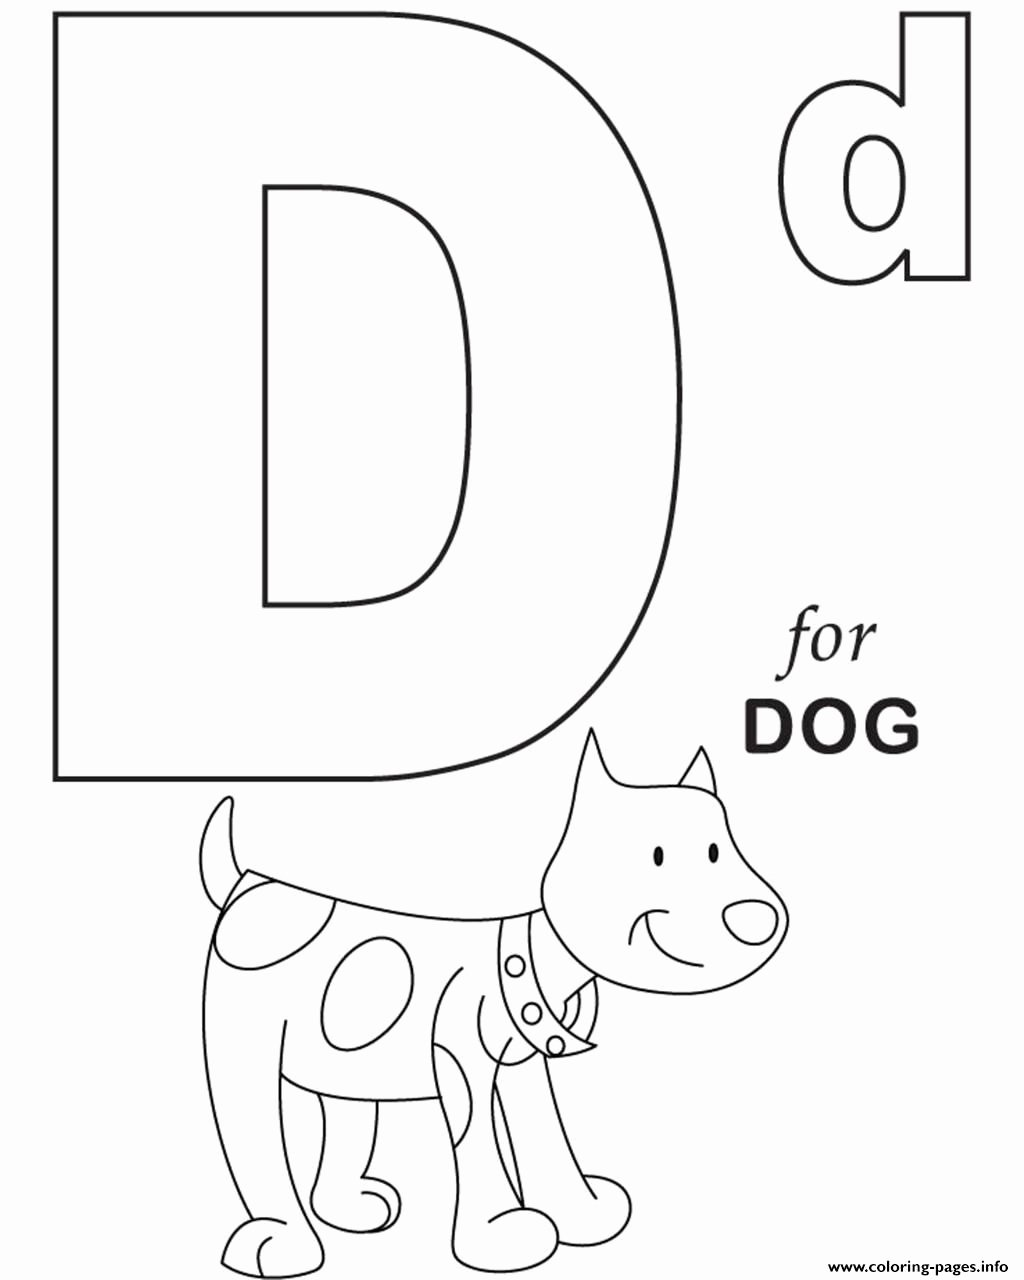 Alphabet Coloring Worksheets for Preschoolers New Excelent Printable Alphabet Coloring Pages for Dog S29a7c